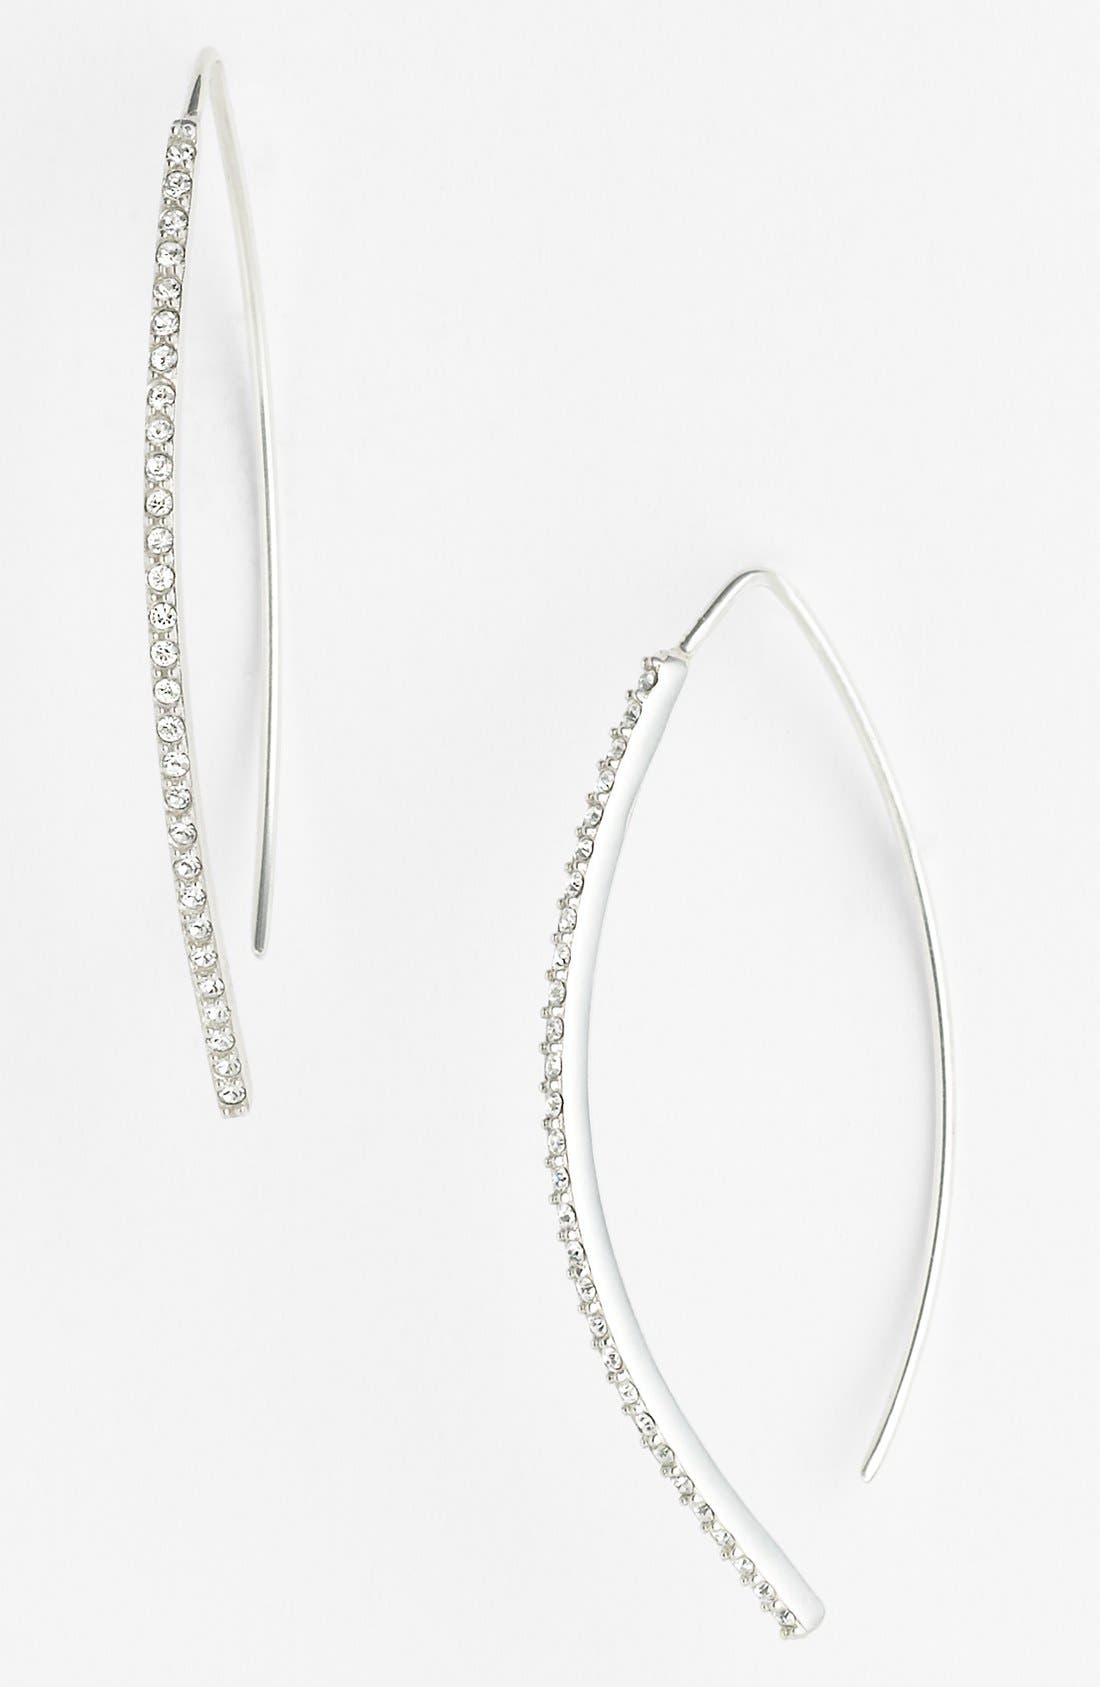 Alternate Image 1 Selected - Judith Jack Linear Earrings